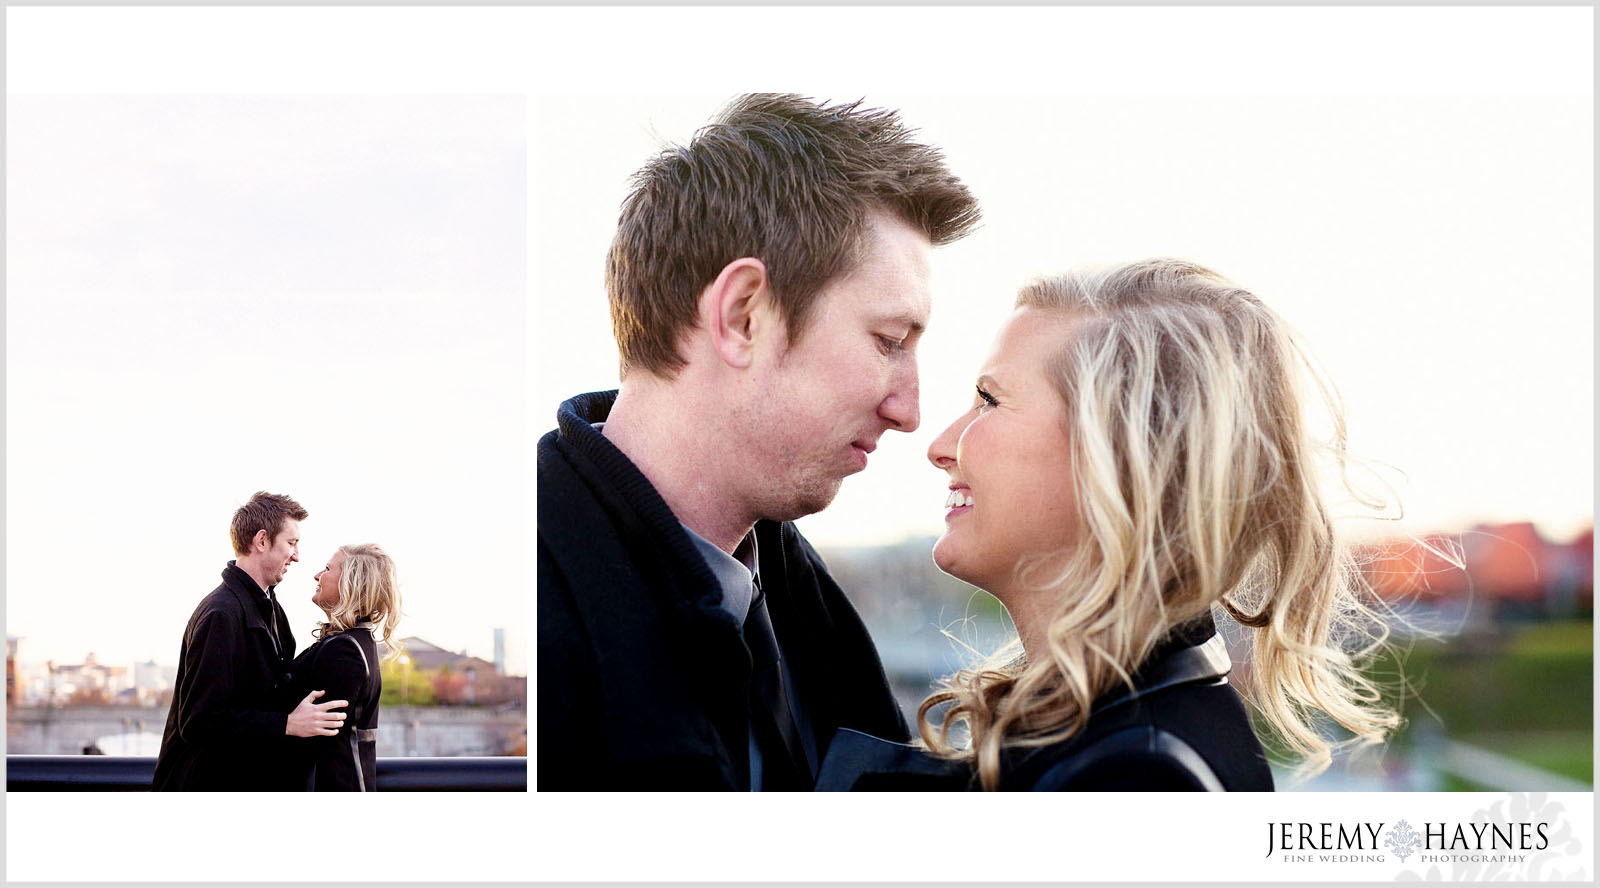 05-romantic-downtown-indiana-central-canal-indianapolis-engagement-photo-ideas.jpg